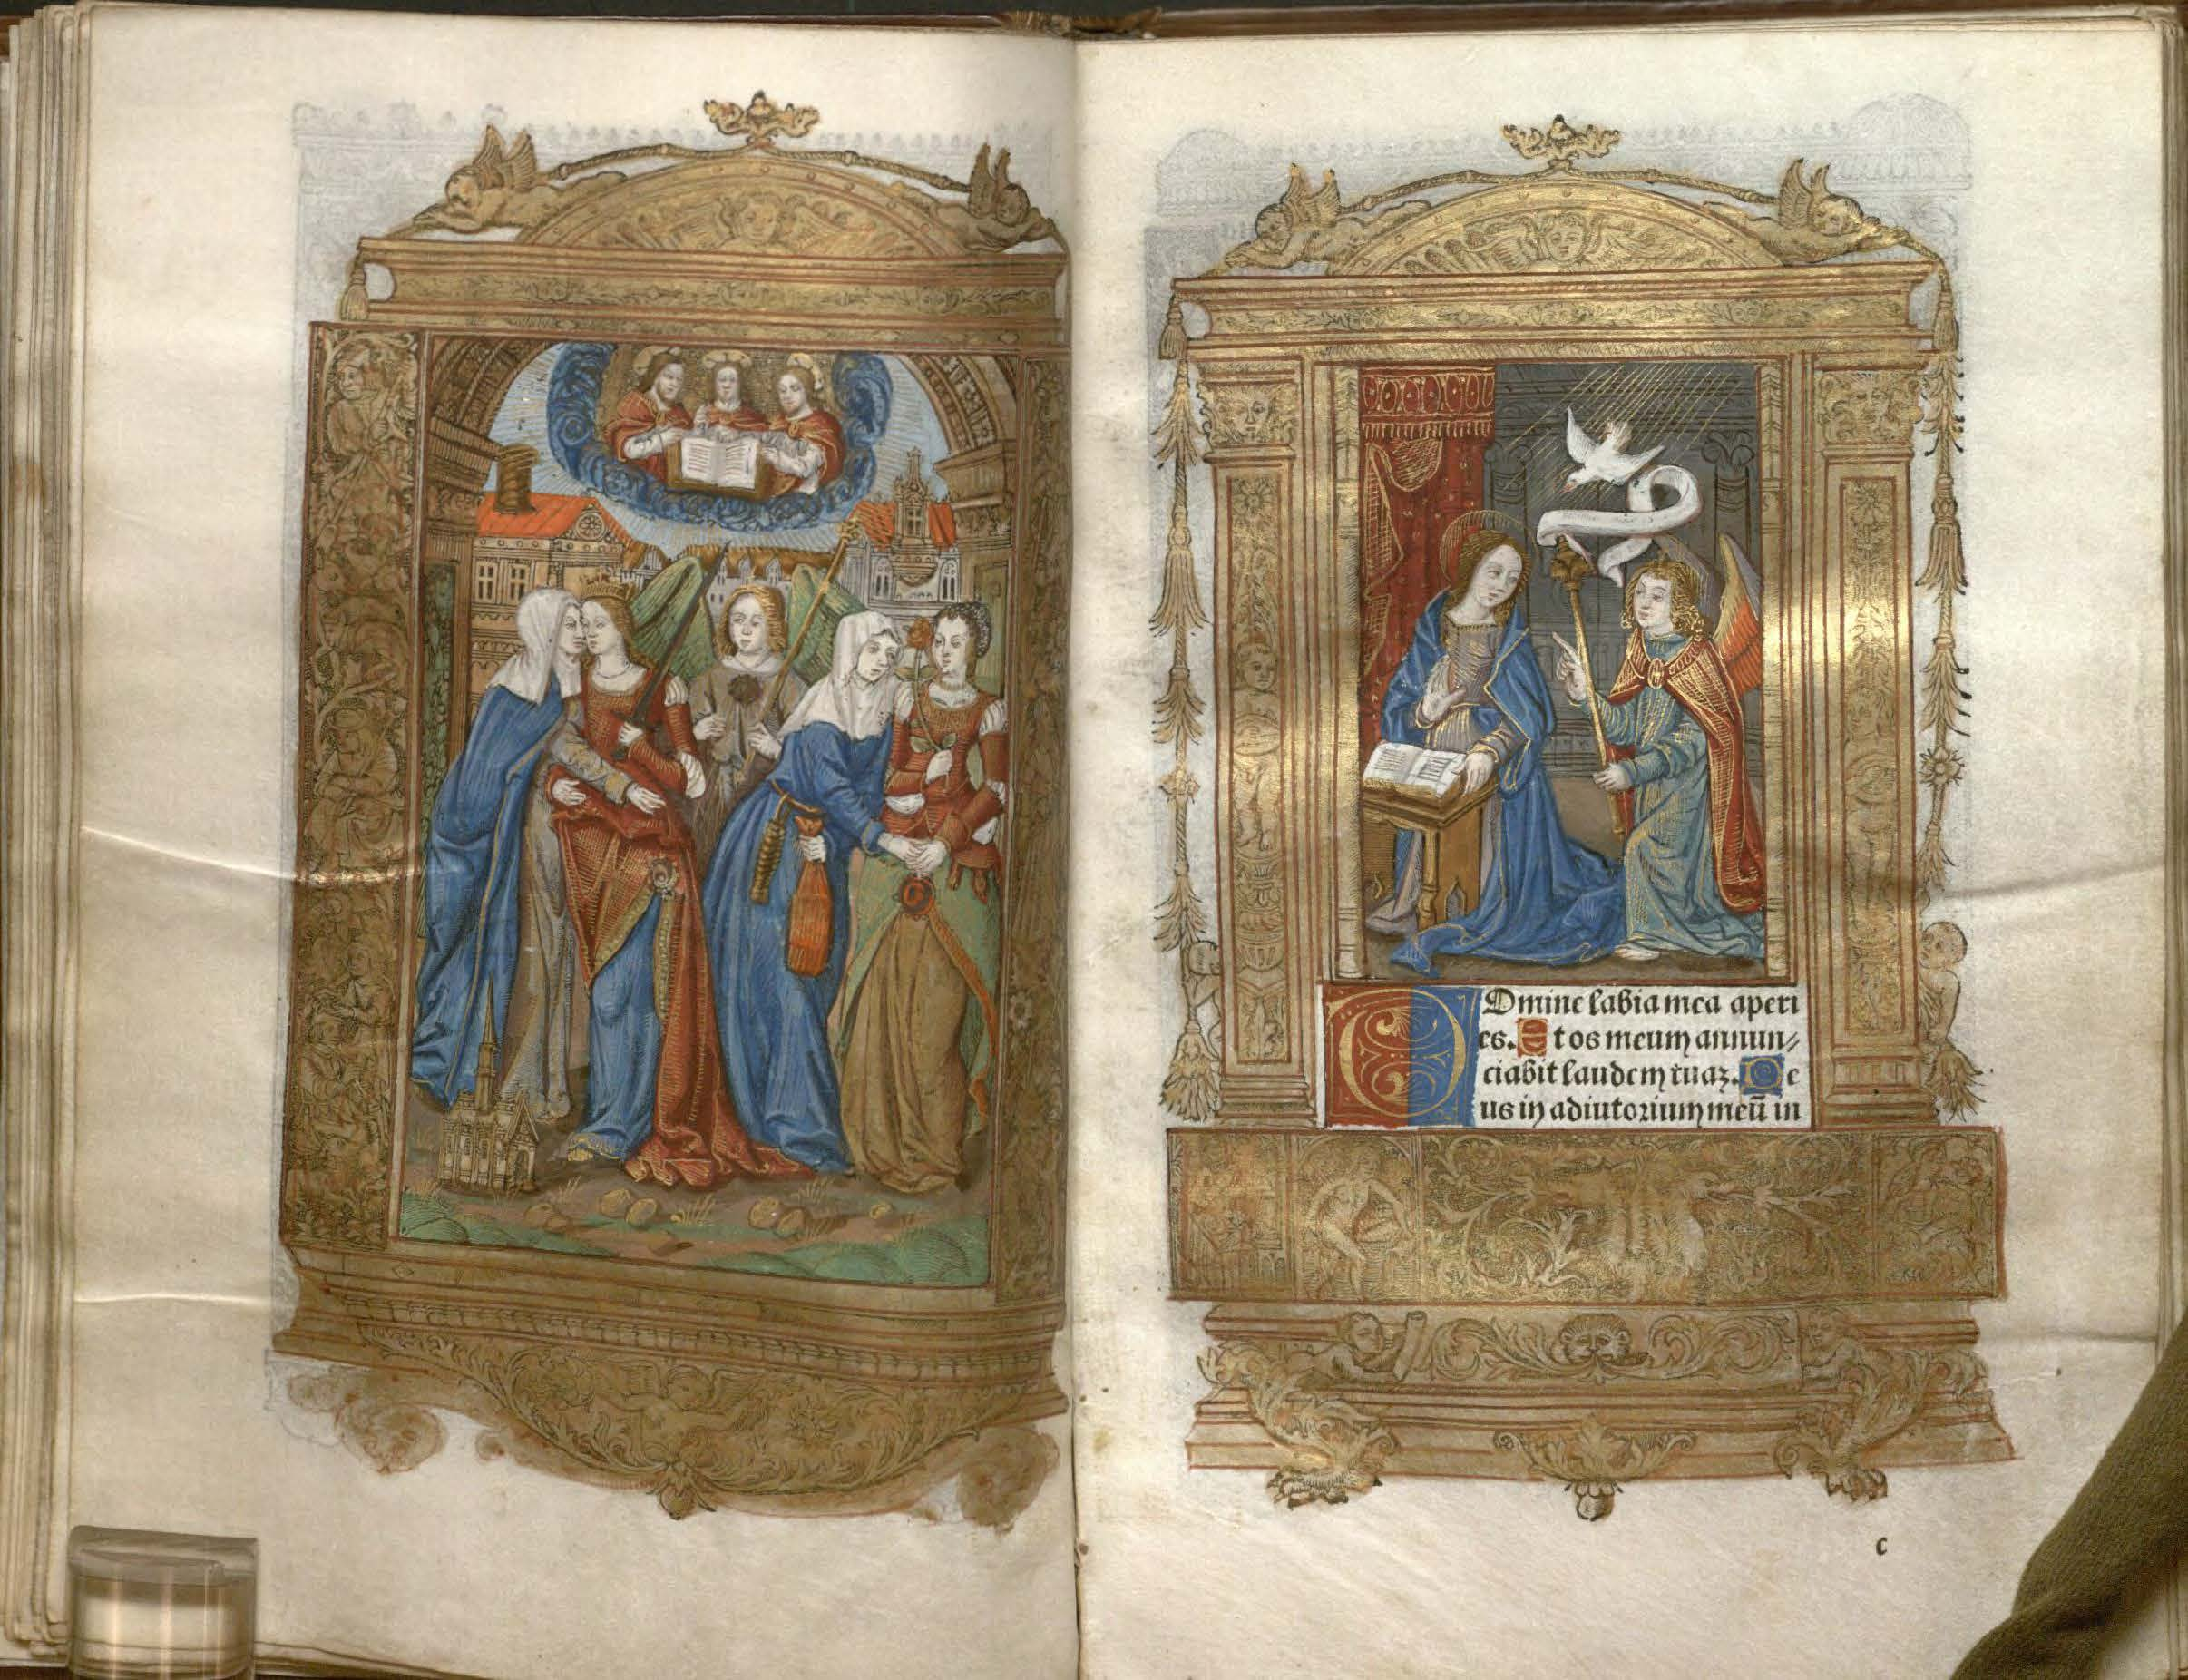 Image of a printed books of hours at an opening with two miniatures.